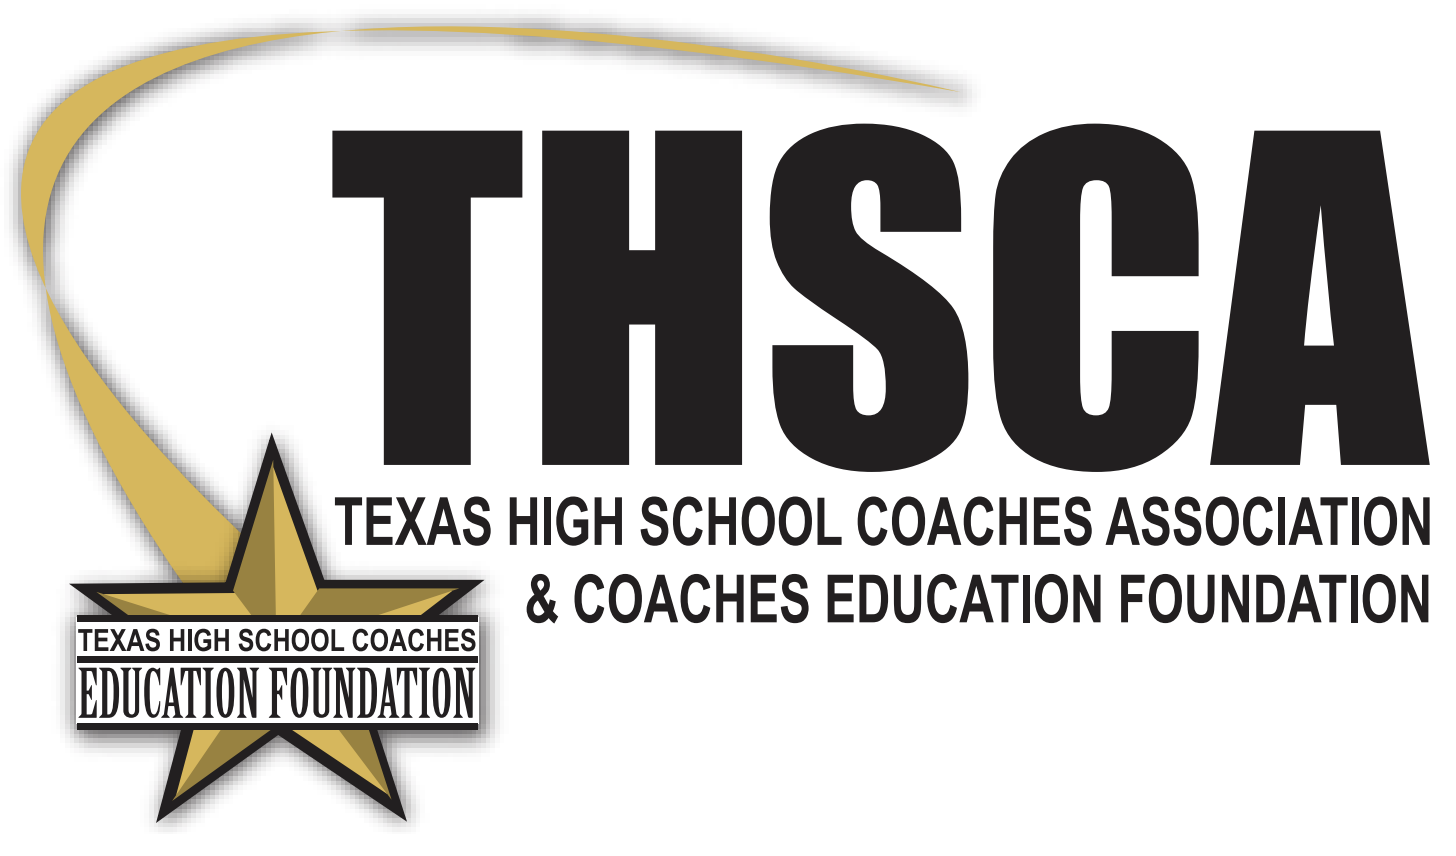 Go to the Texas High School Coaches Education Foundation's Website